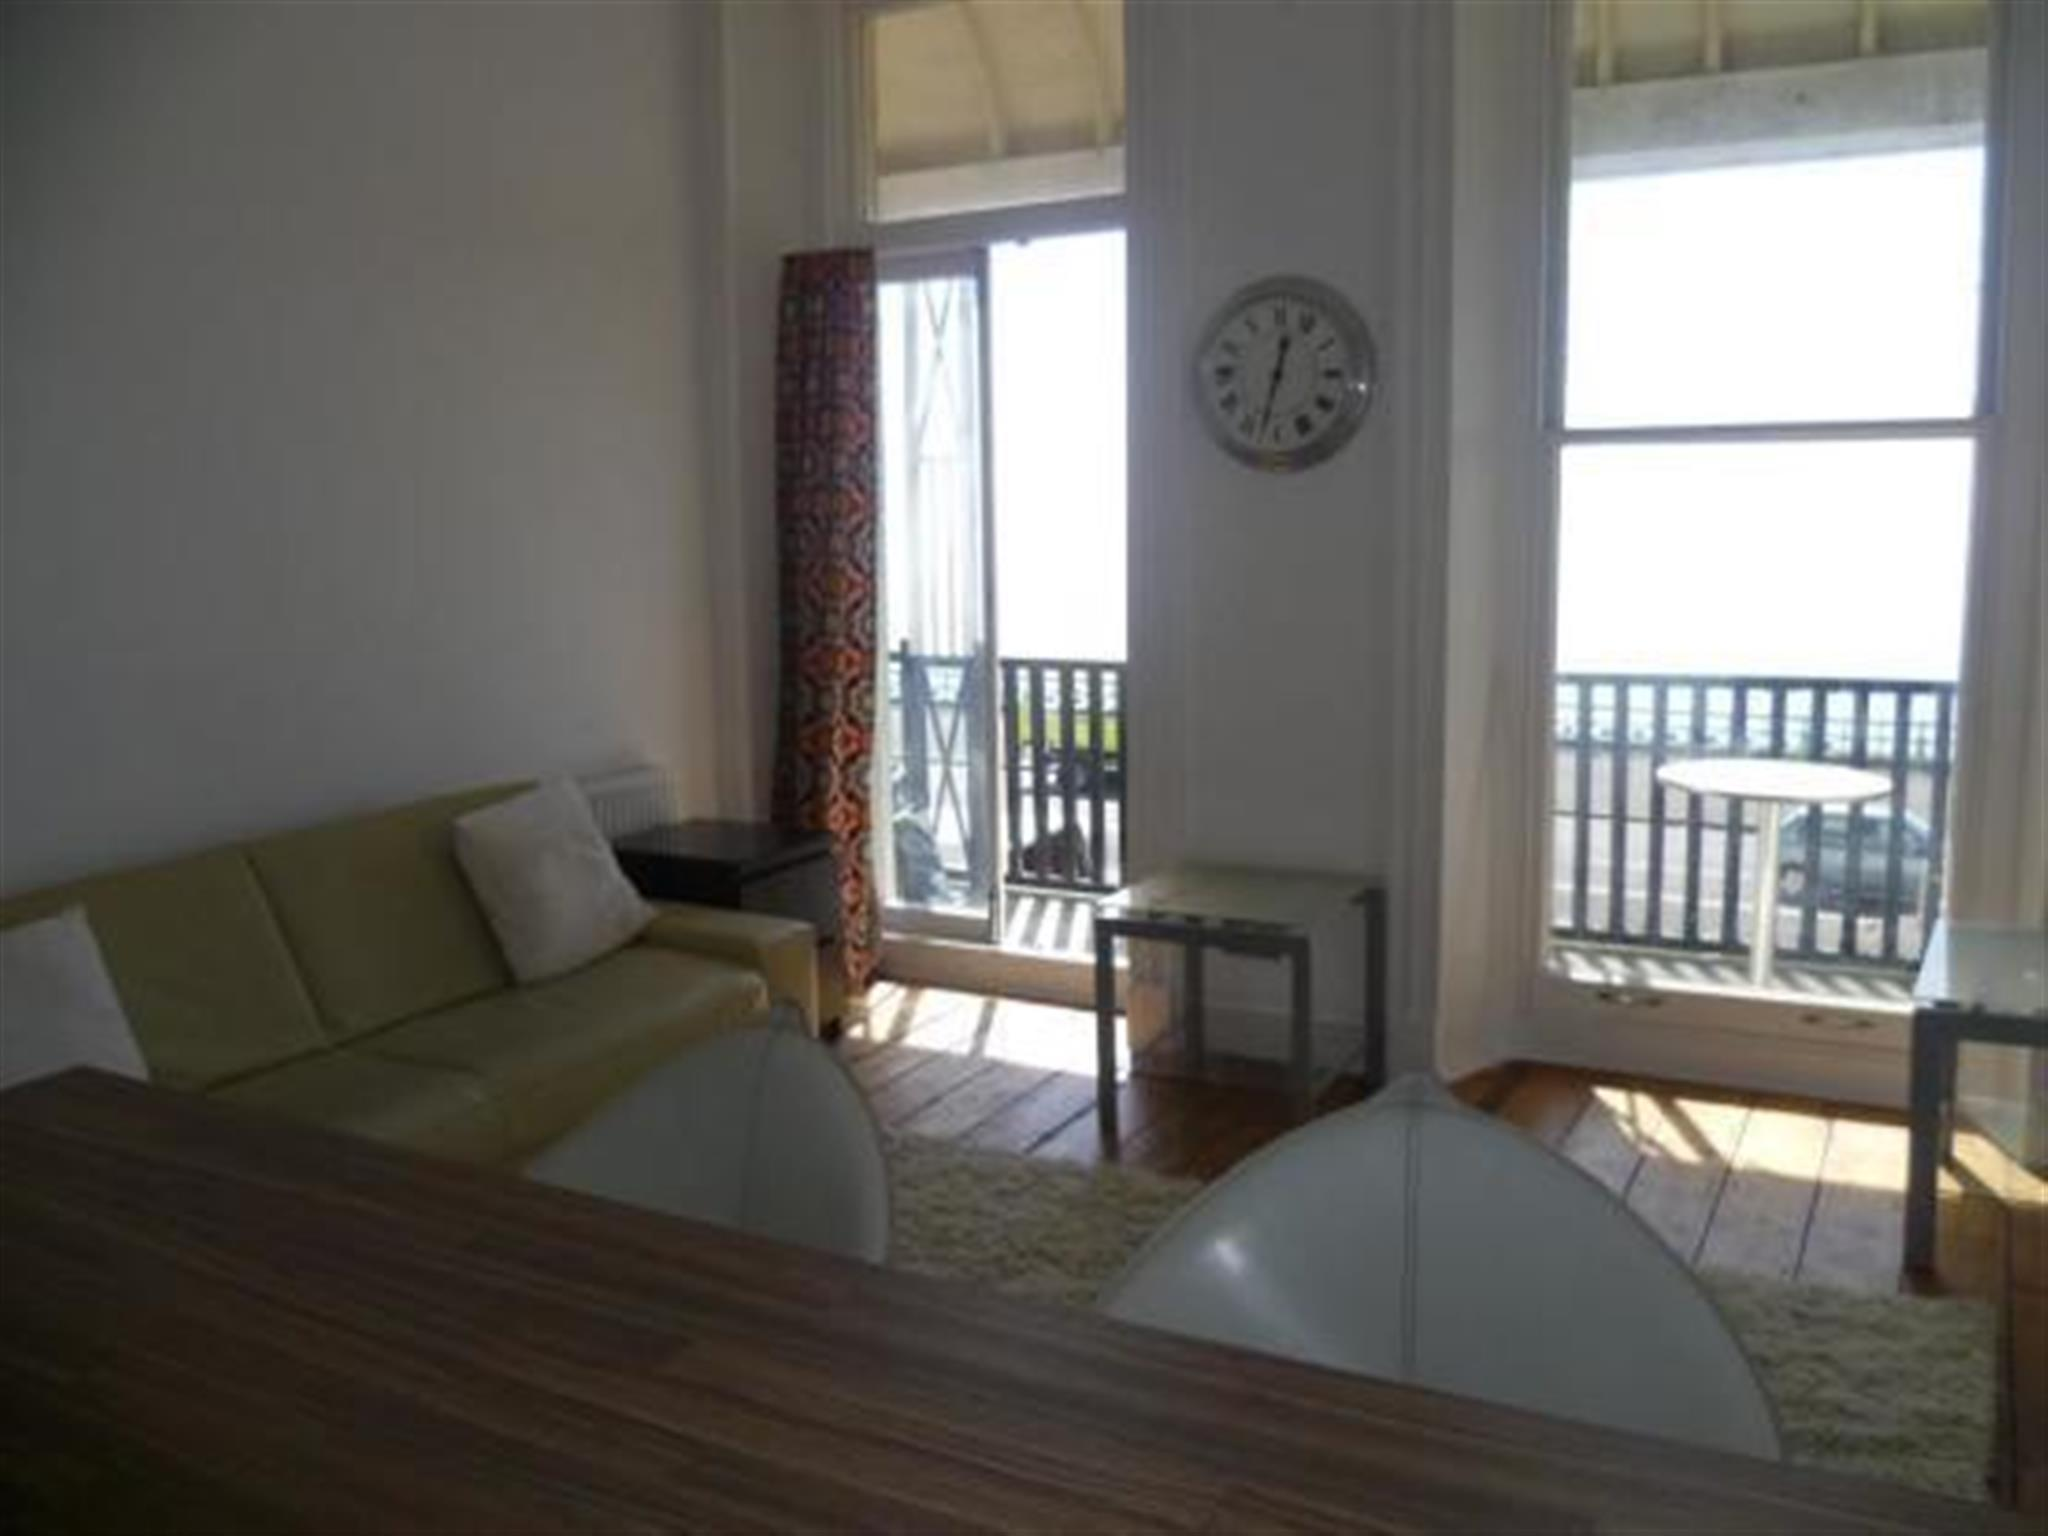 2 bedroom apartment to rent marine parade brighton for Room to rent brighton